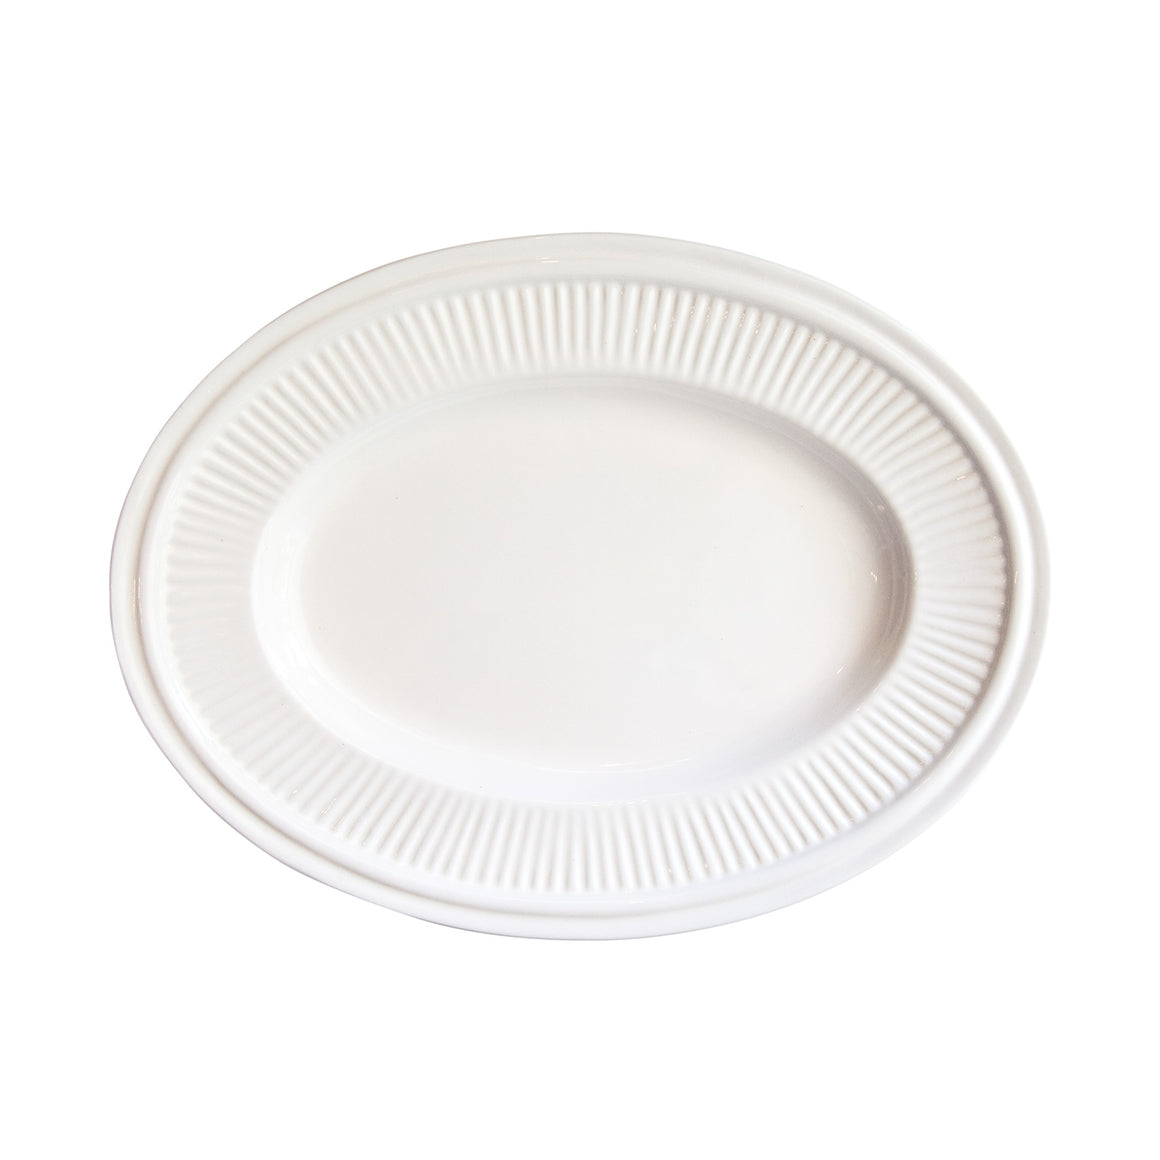 Market platter small oval #2